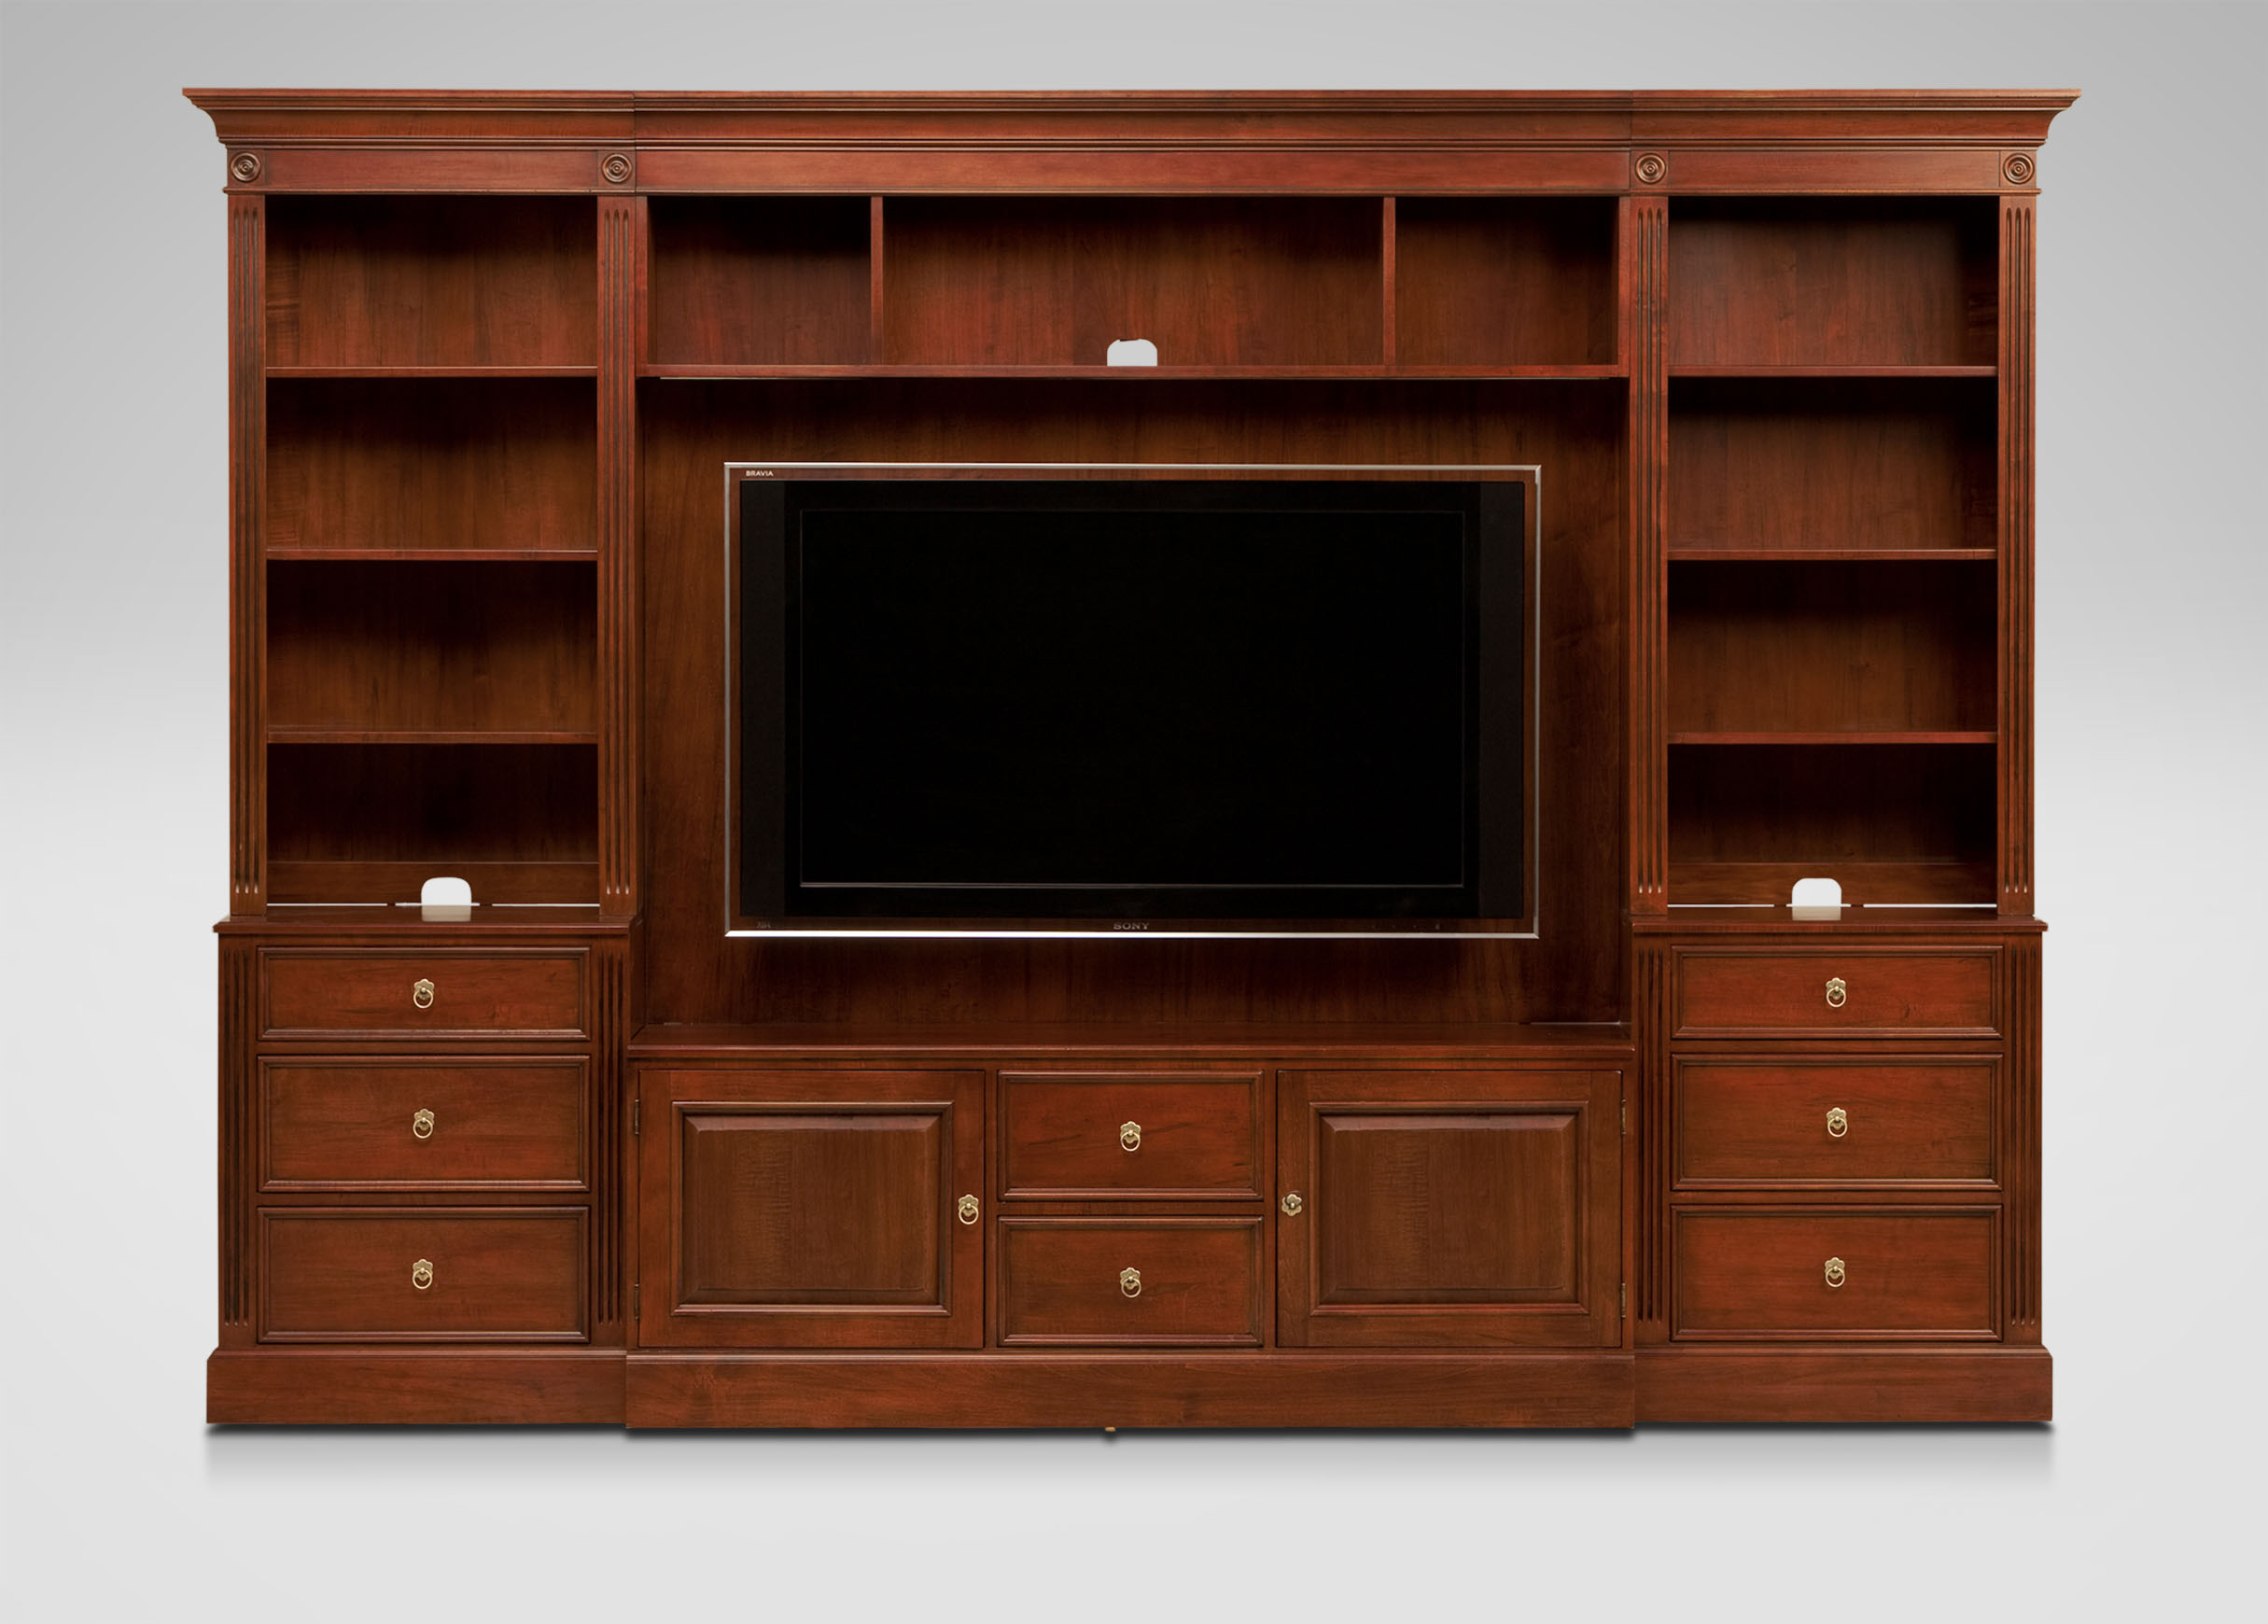 robinson media center media cabinets ethan allen. Black Bedroom Furniture Sets. Home Design Ideas